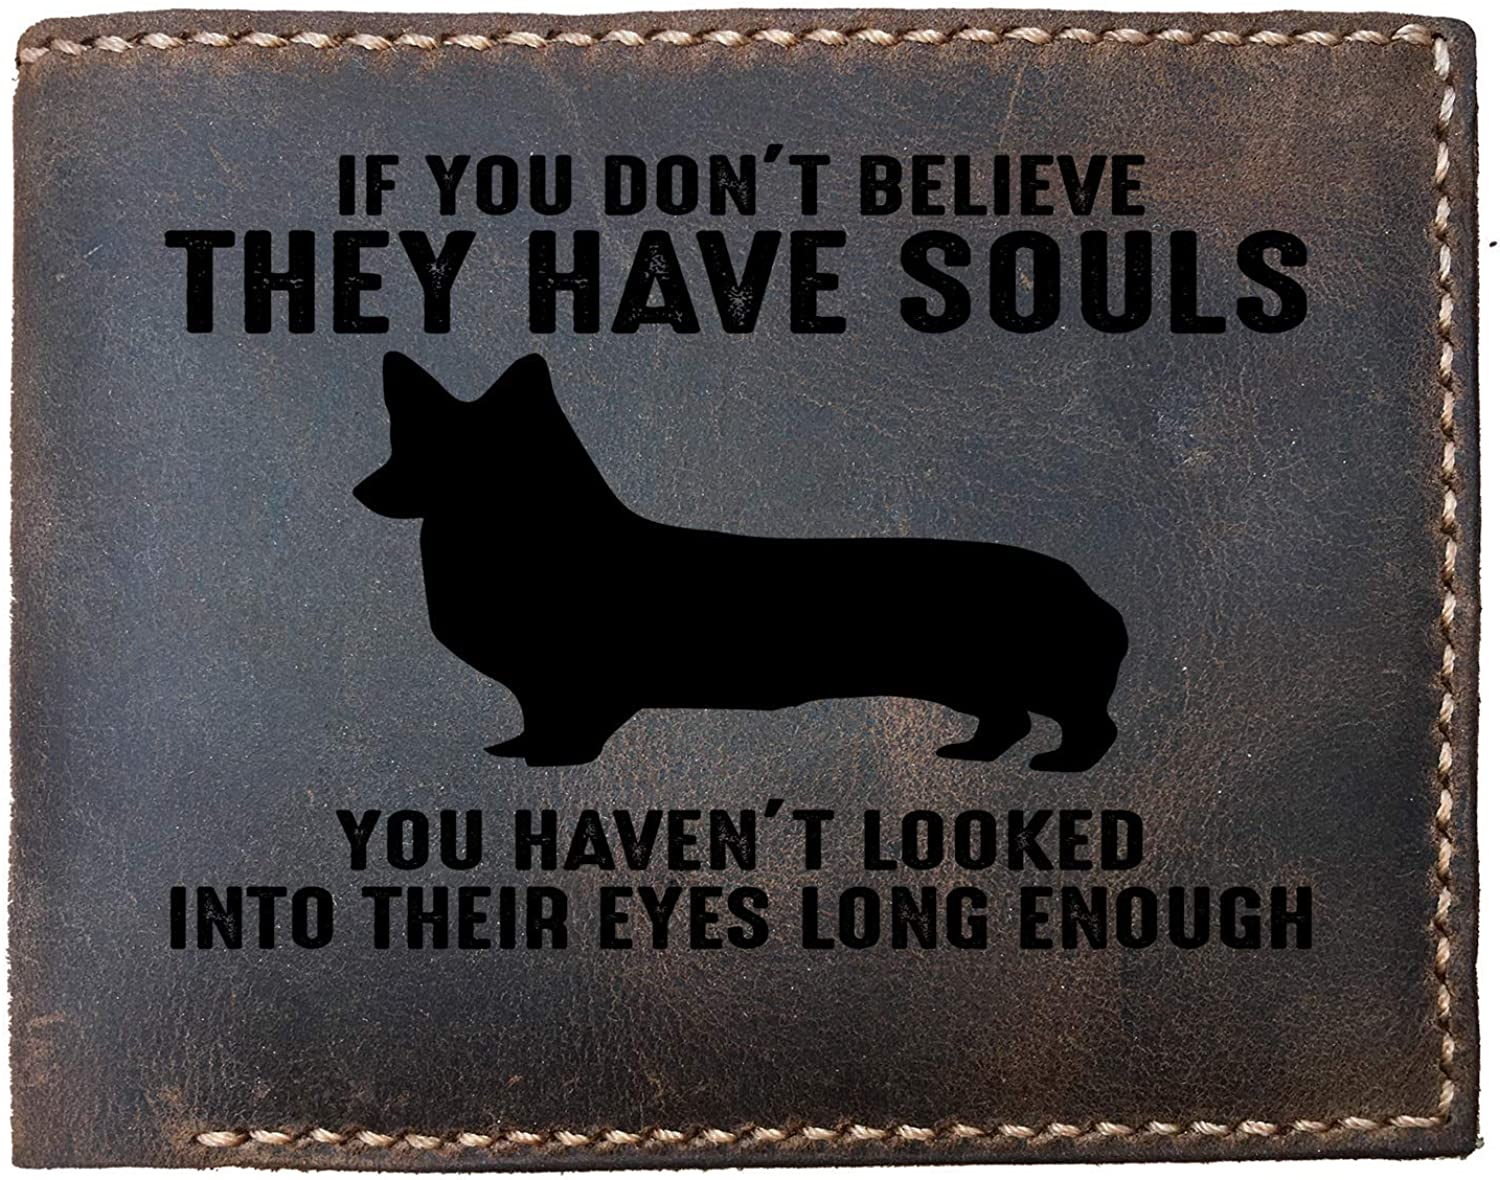 Lobsteray Looked Into Corgis Eyes Custom Laser Engraved Leather Bifold Wallet for Men Funny Sayings